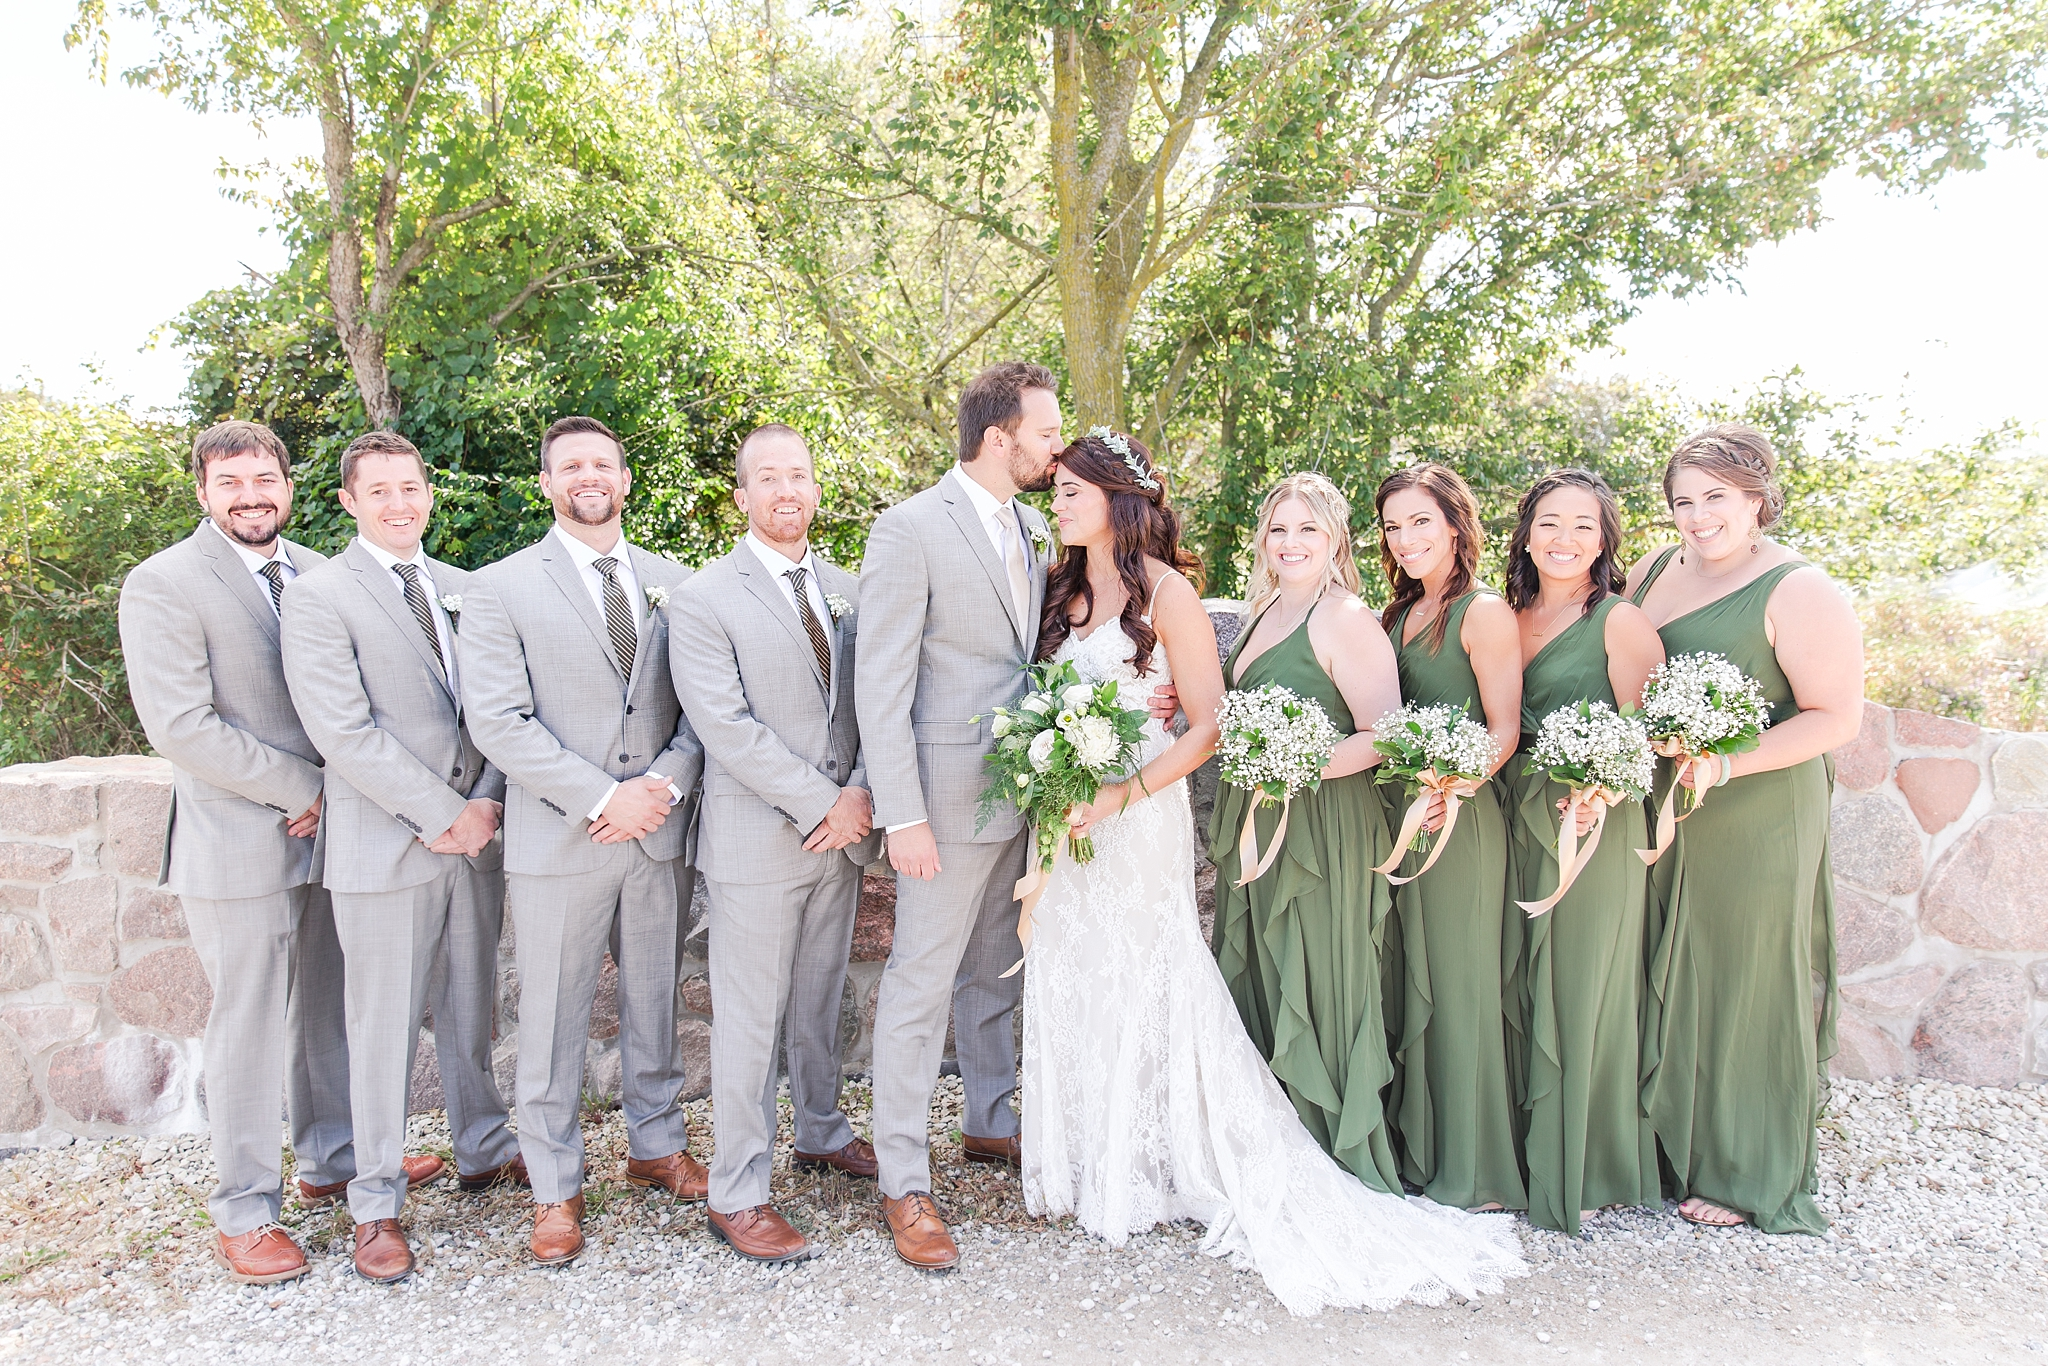 natural-rustic-wedding-photos-at-frutig-farms-the-valley-in-ann-arbor-michigan-by-courtney-carolyn-photography_0038.jpg